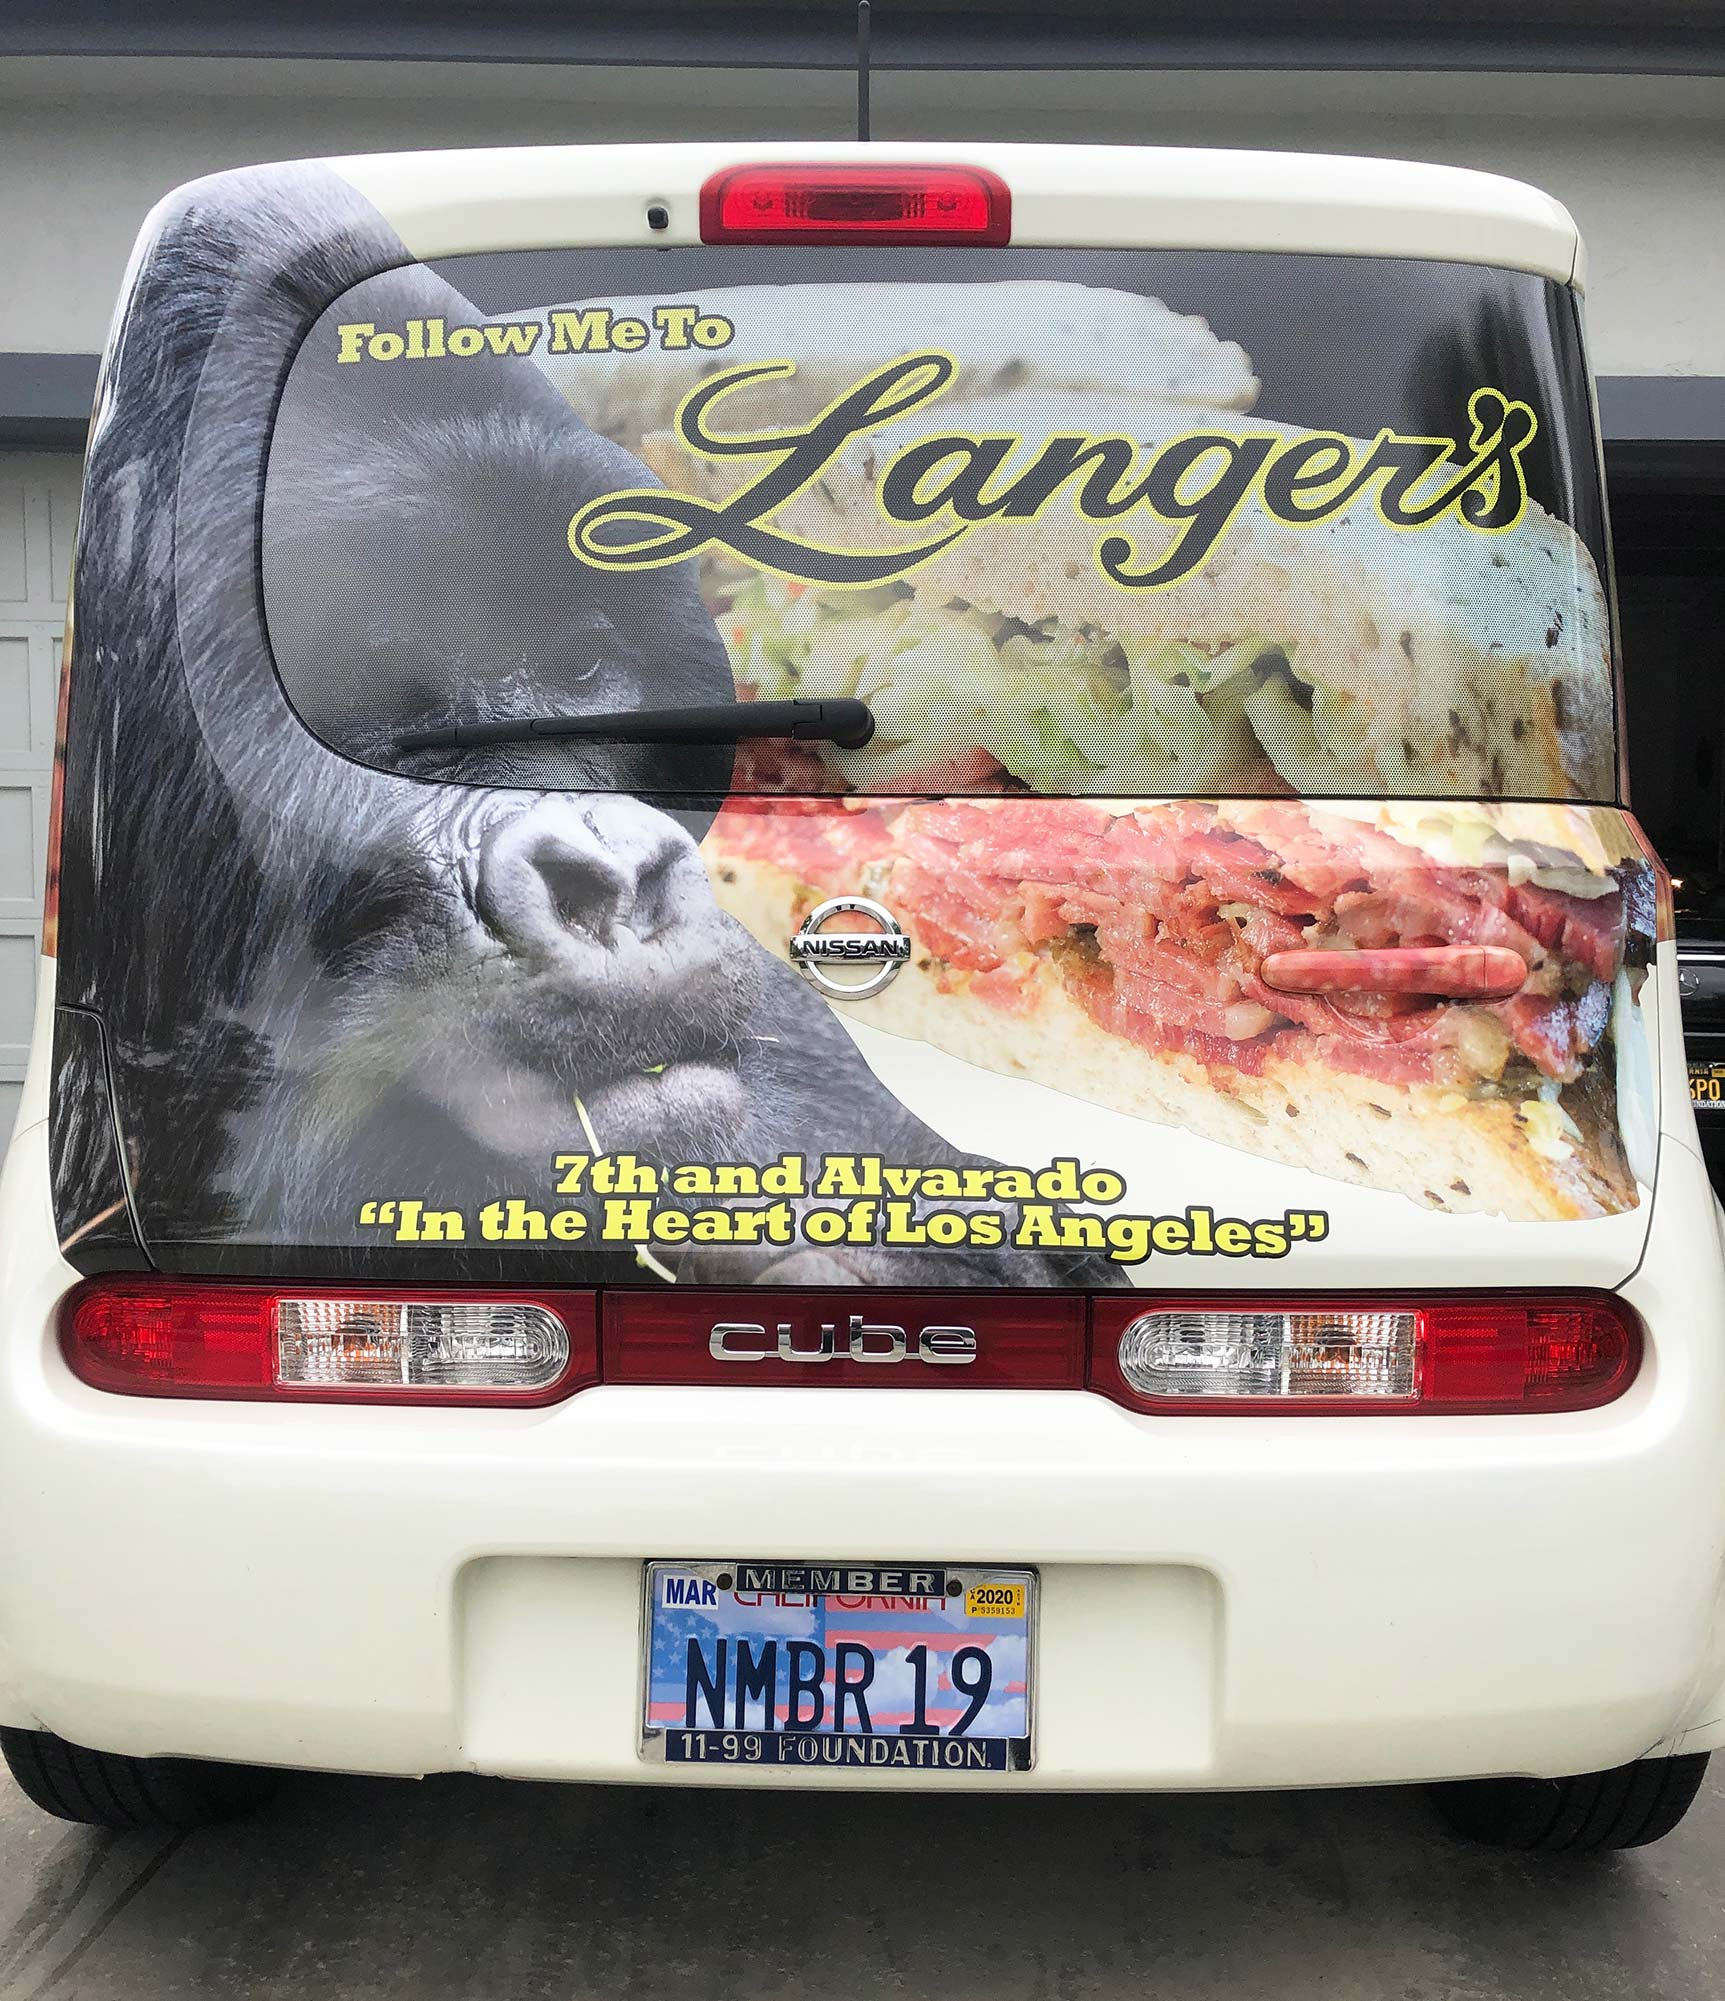 automobile covered in graphics reading follow me to Langer's